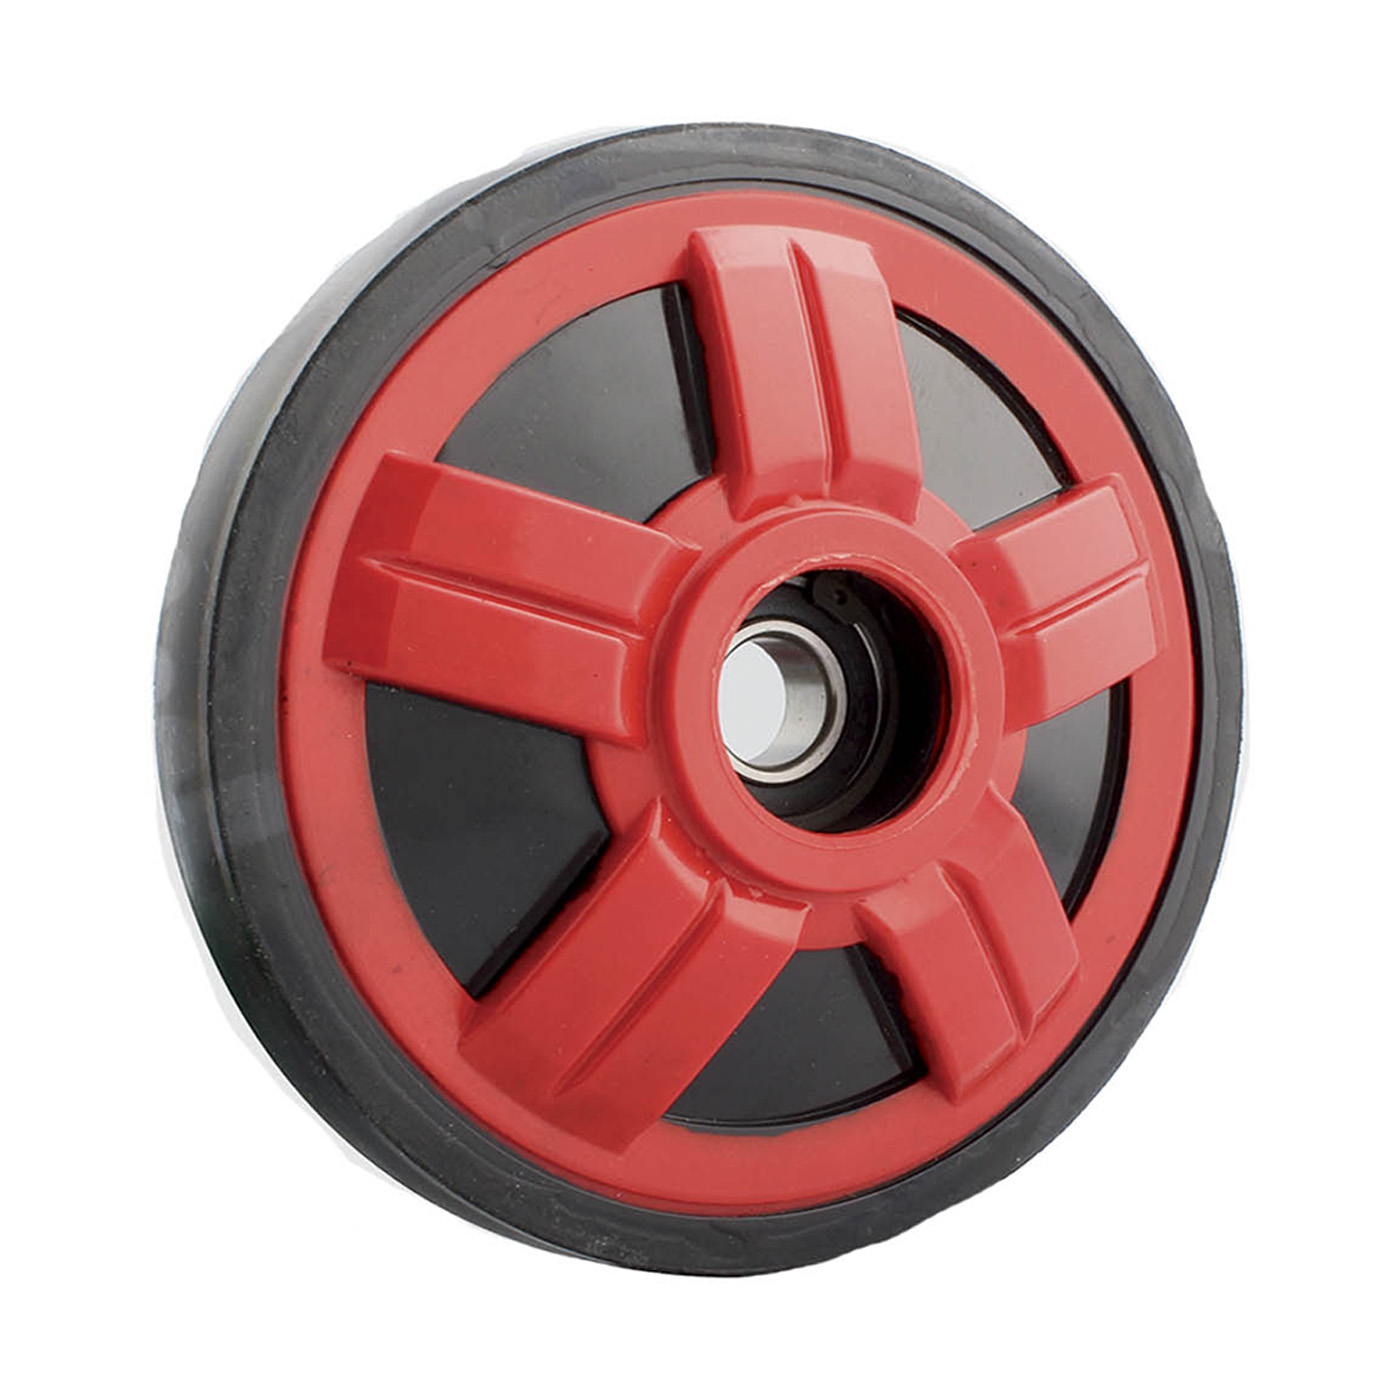 Kimpex Idler Wheel W  Bearing 7 125 Red Ref  503190752